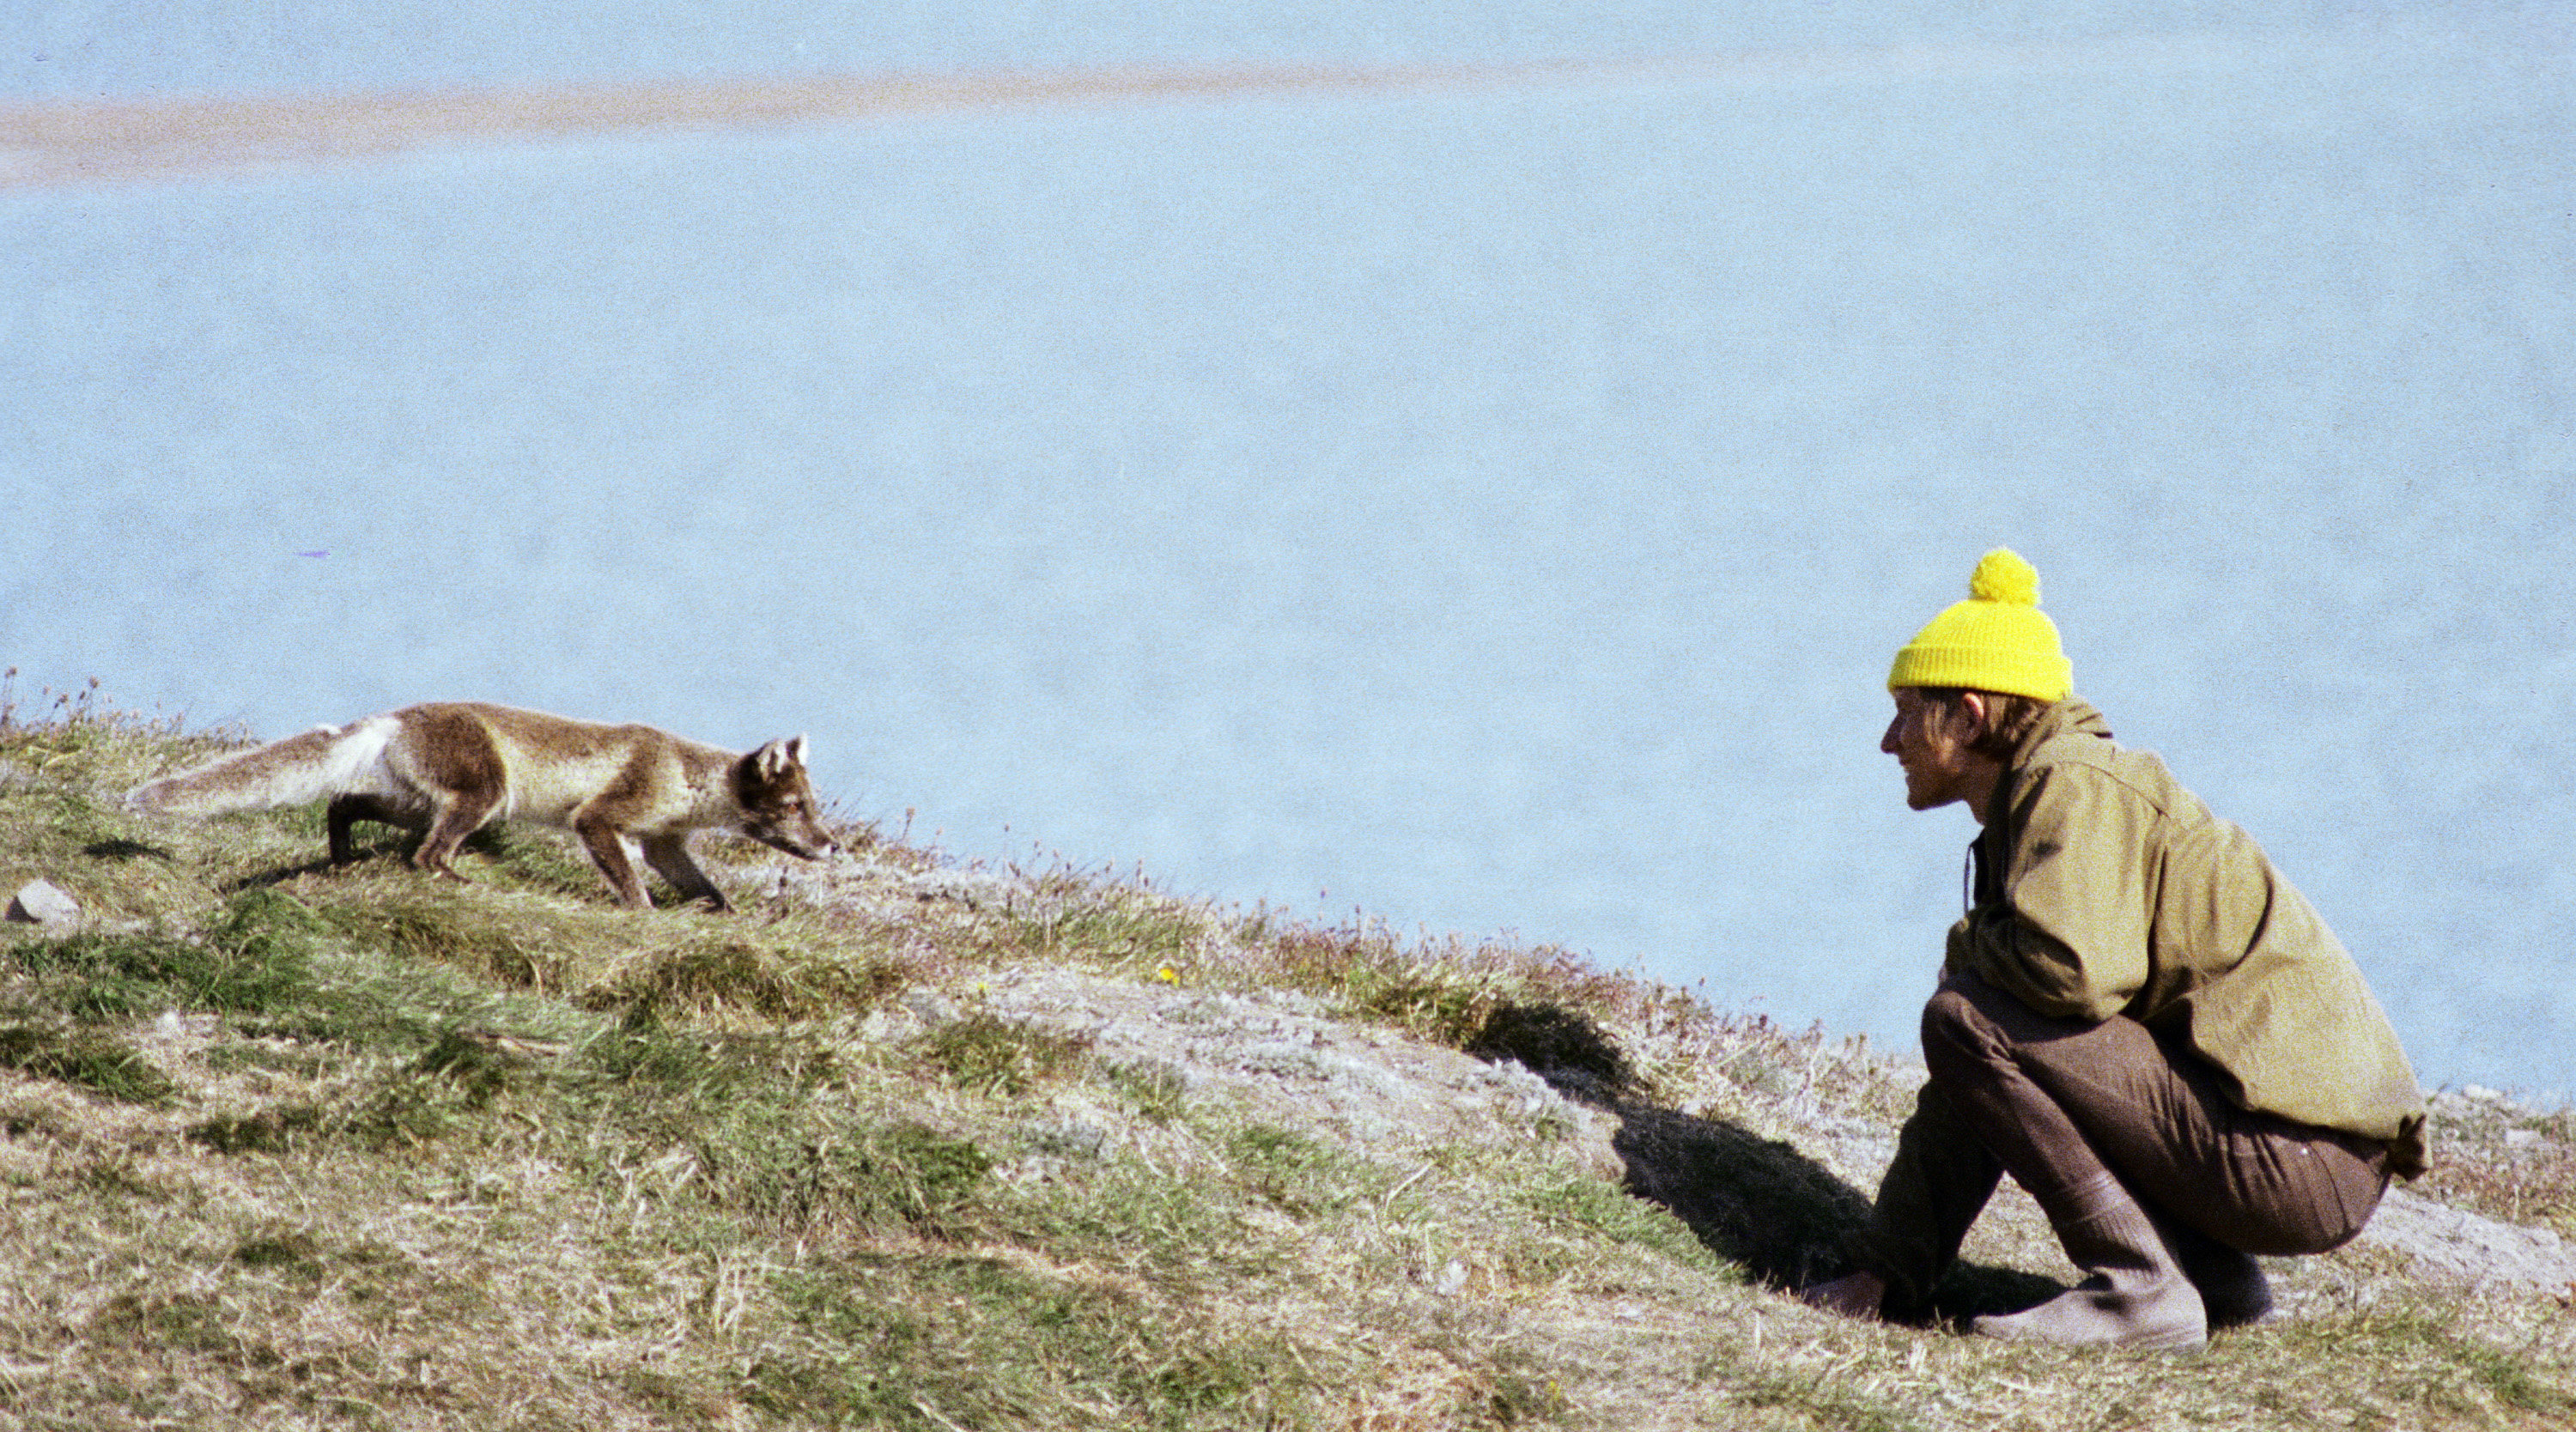 Biologist monitoring polar fox in the Wrangel Island reserve